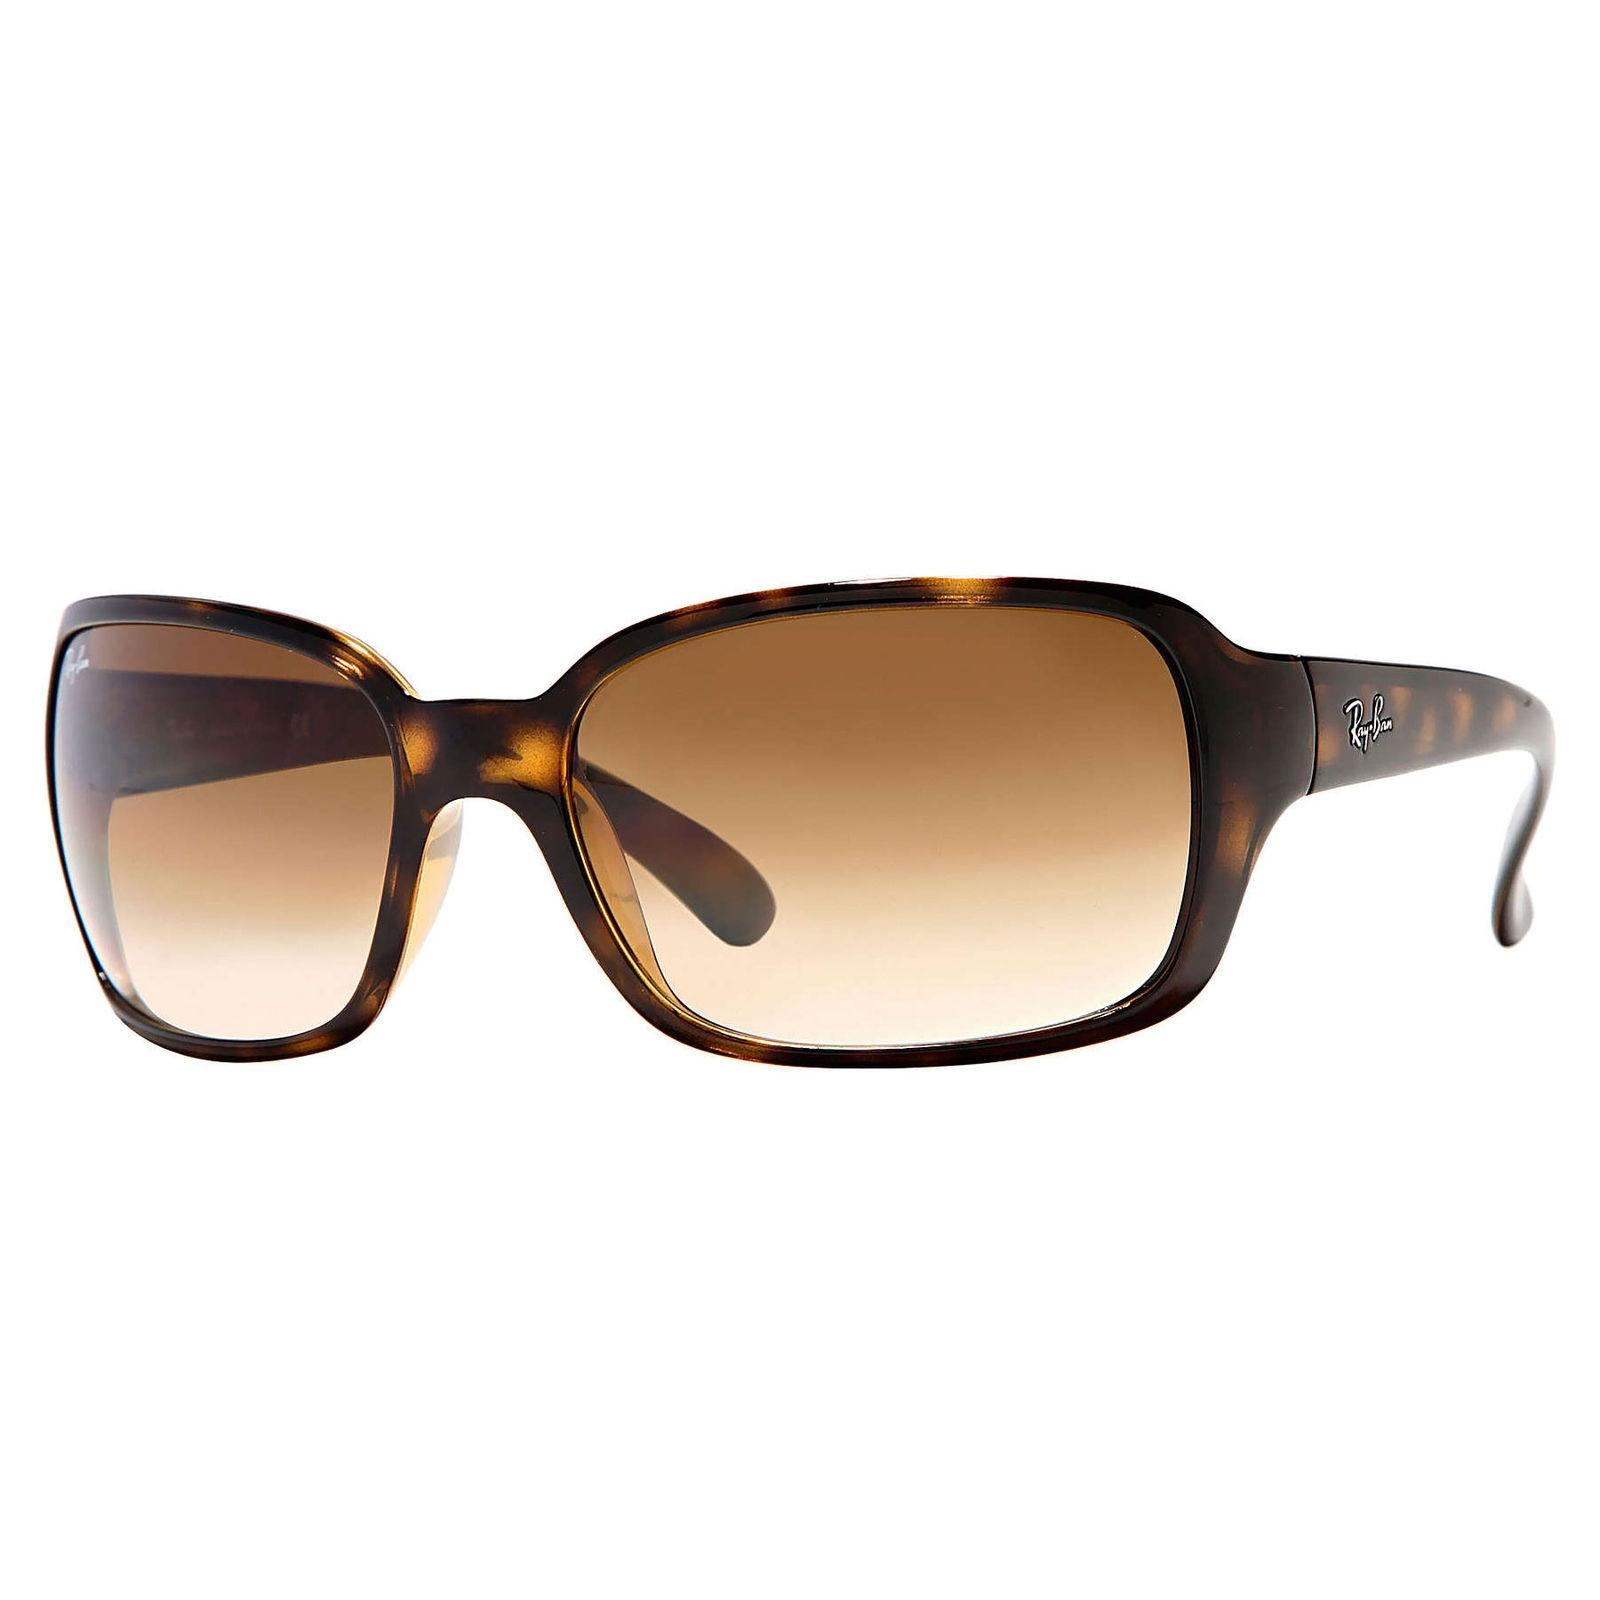 dc016ae26c8 discount ray ban ray ban sunglasses tortoise light brown gradient 60mm  rb4068 cd0cf 638af